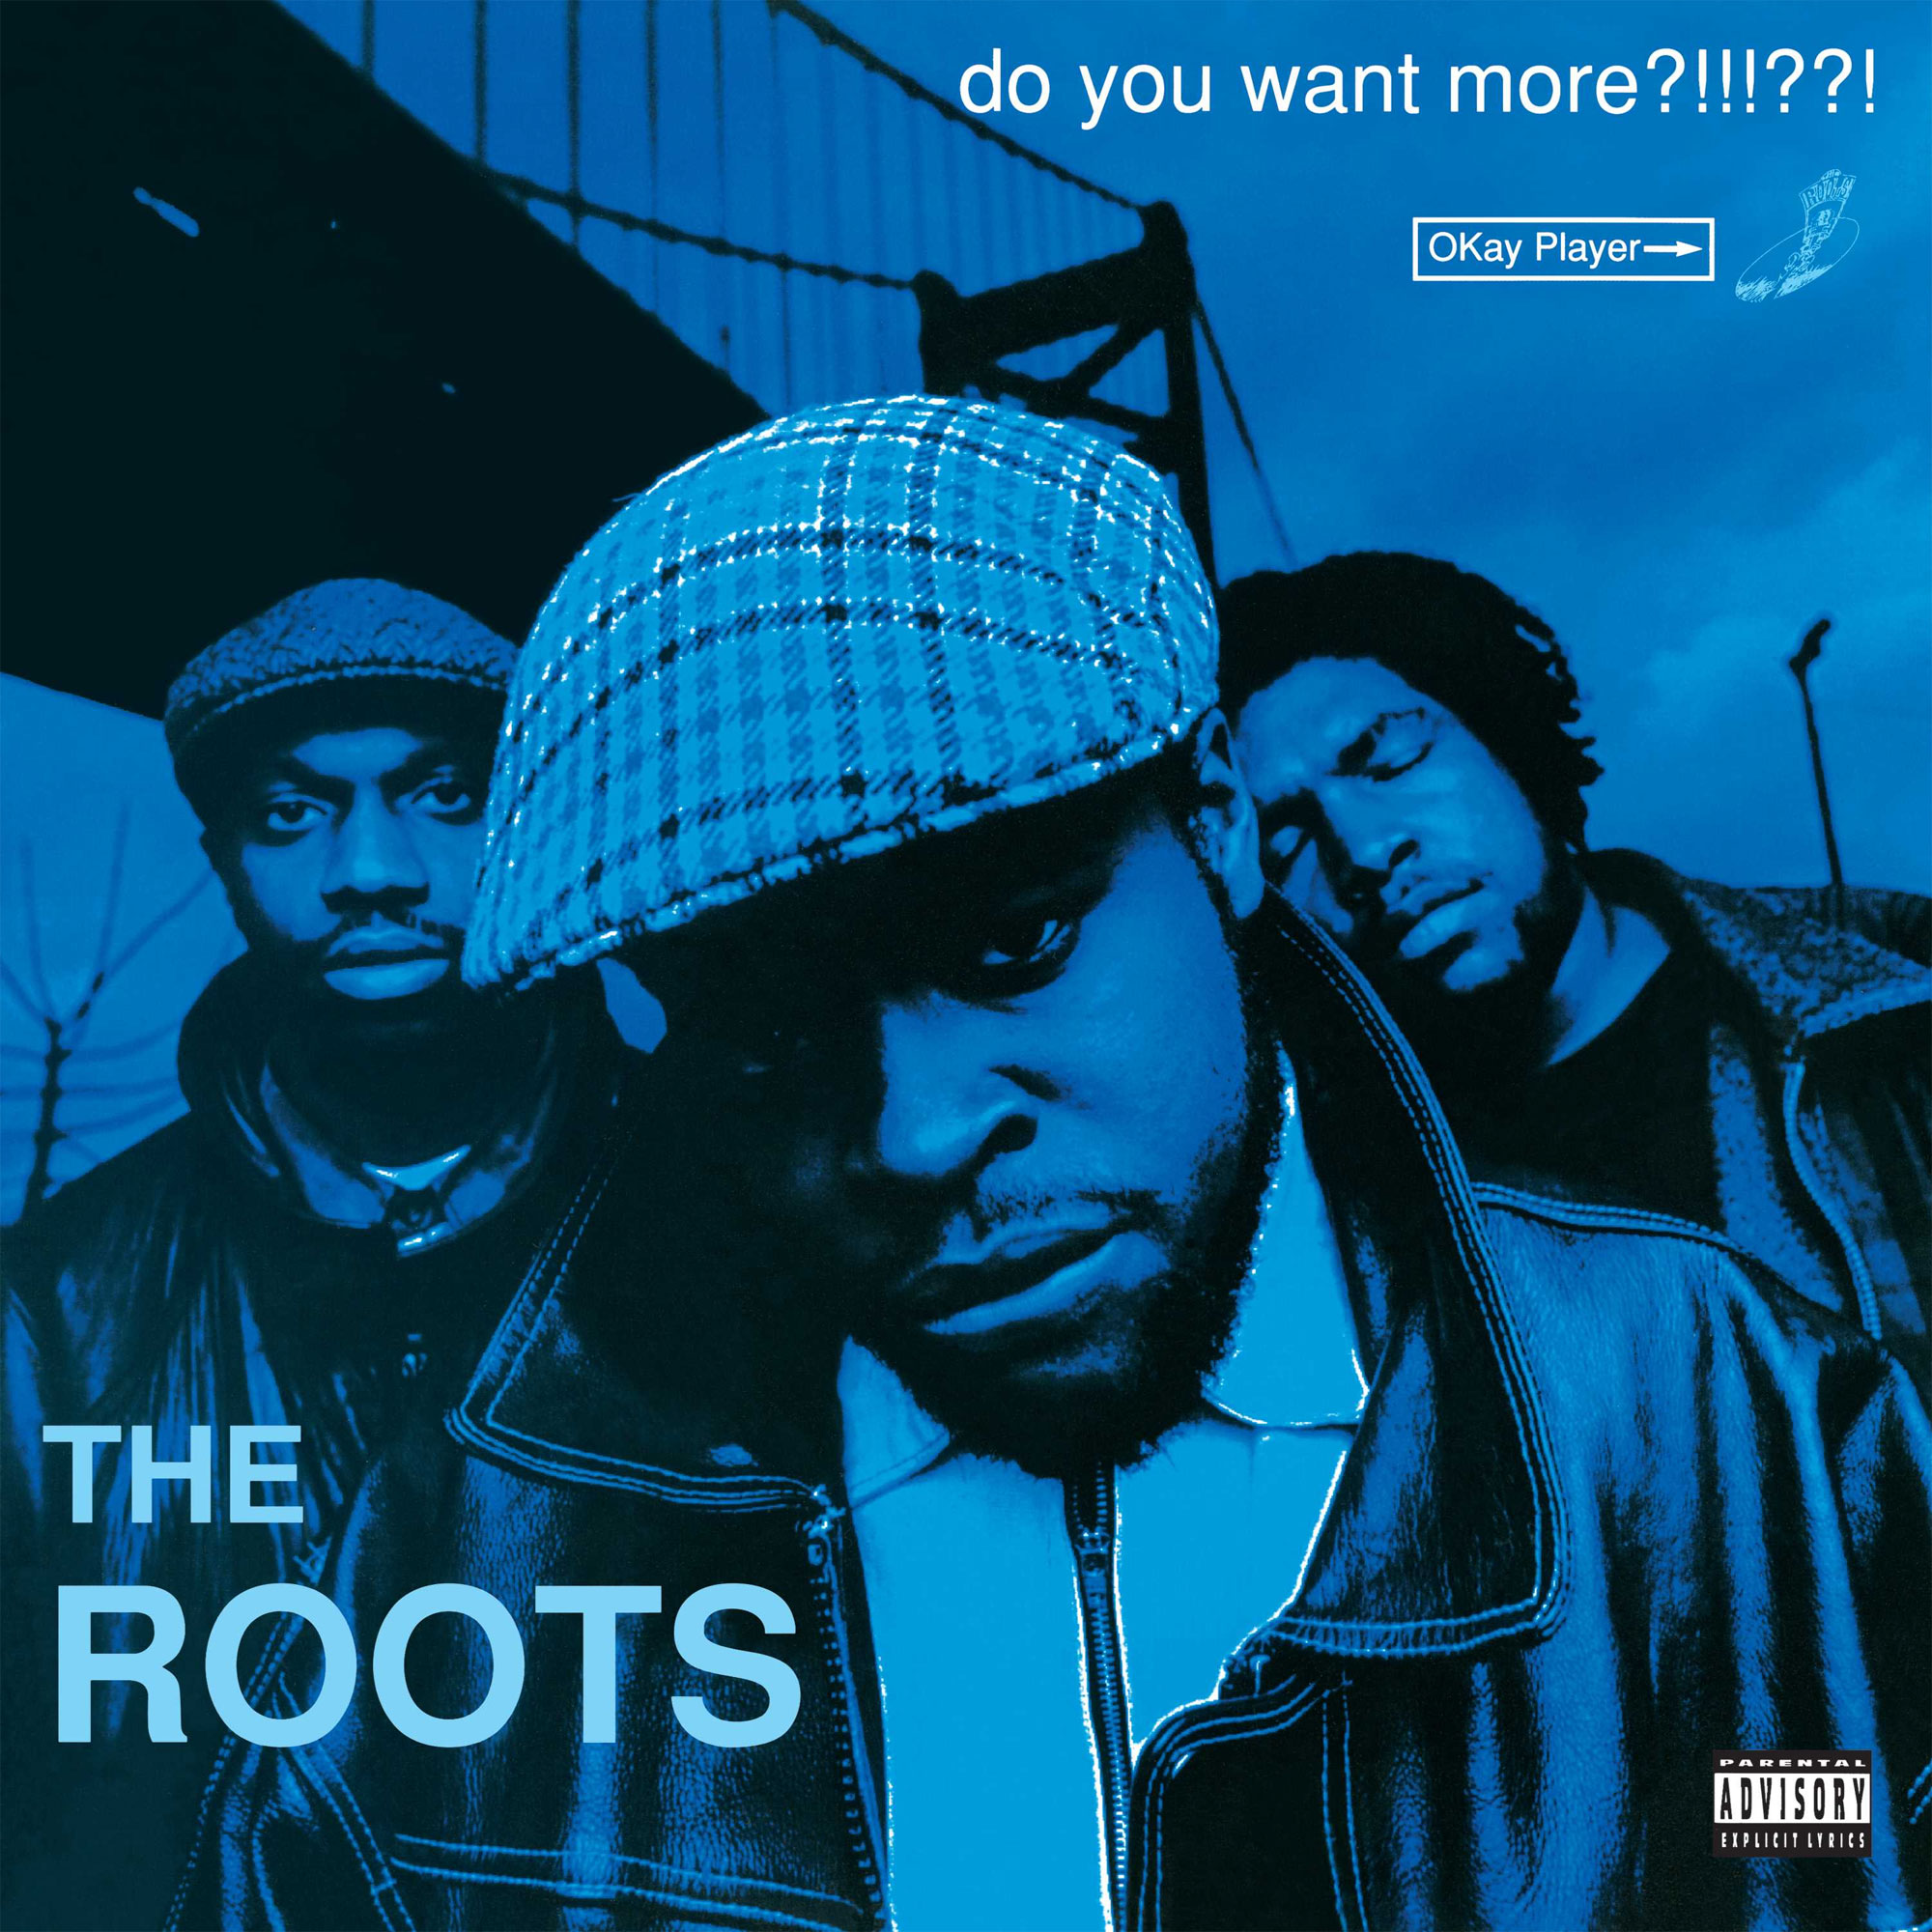 The Roots Do You Want More?!!!??! (Deluxe Edition) 3LP Scratch & Dent